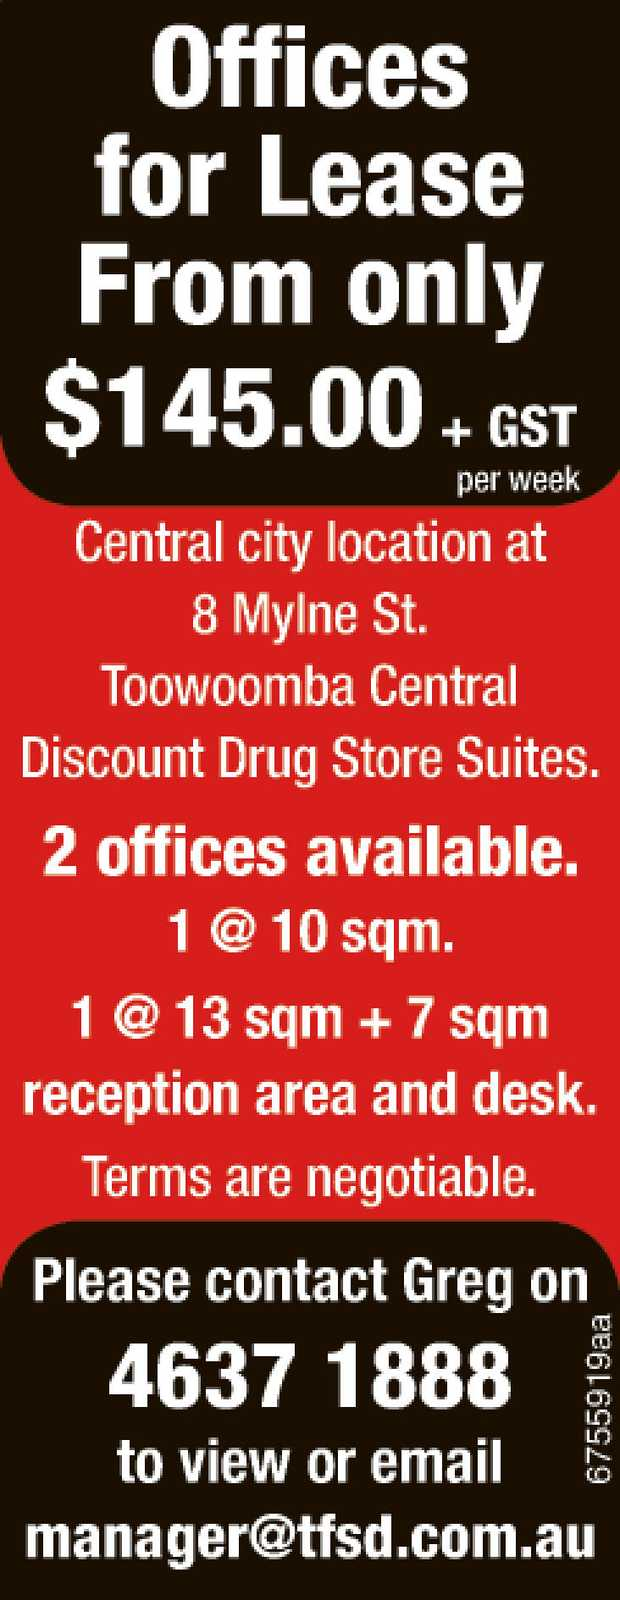 Offices for Lease From only $145.00 + GST per week   Central city location at 8 Mylne S...